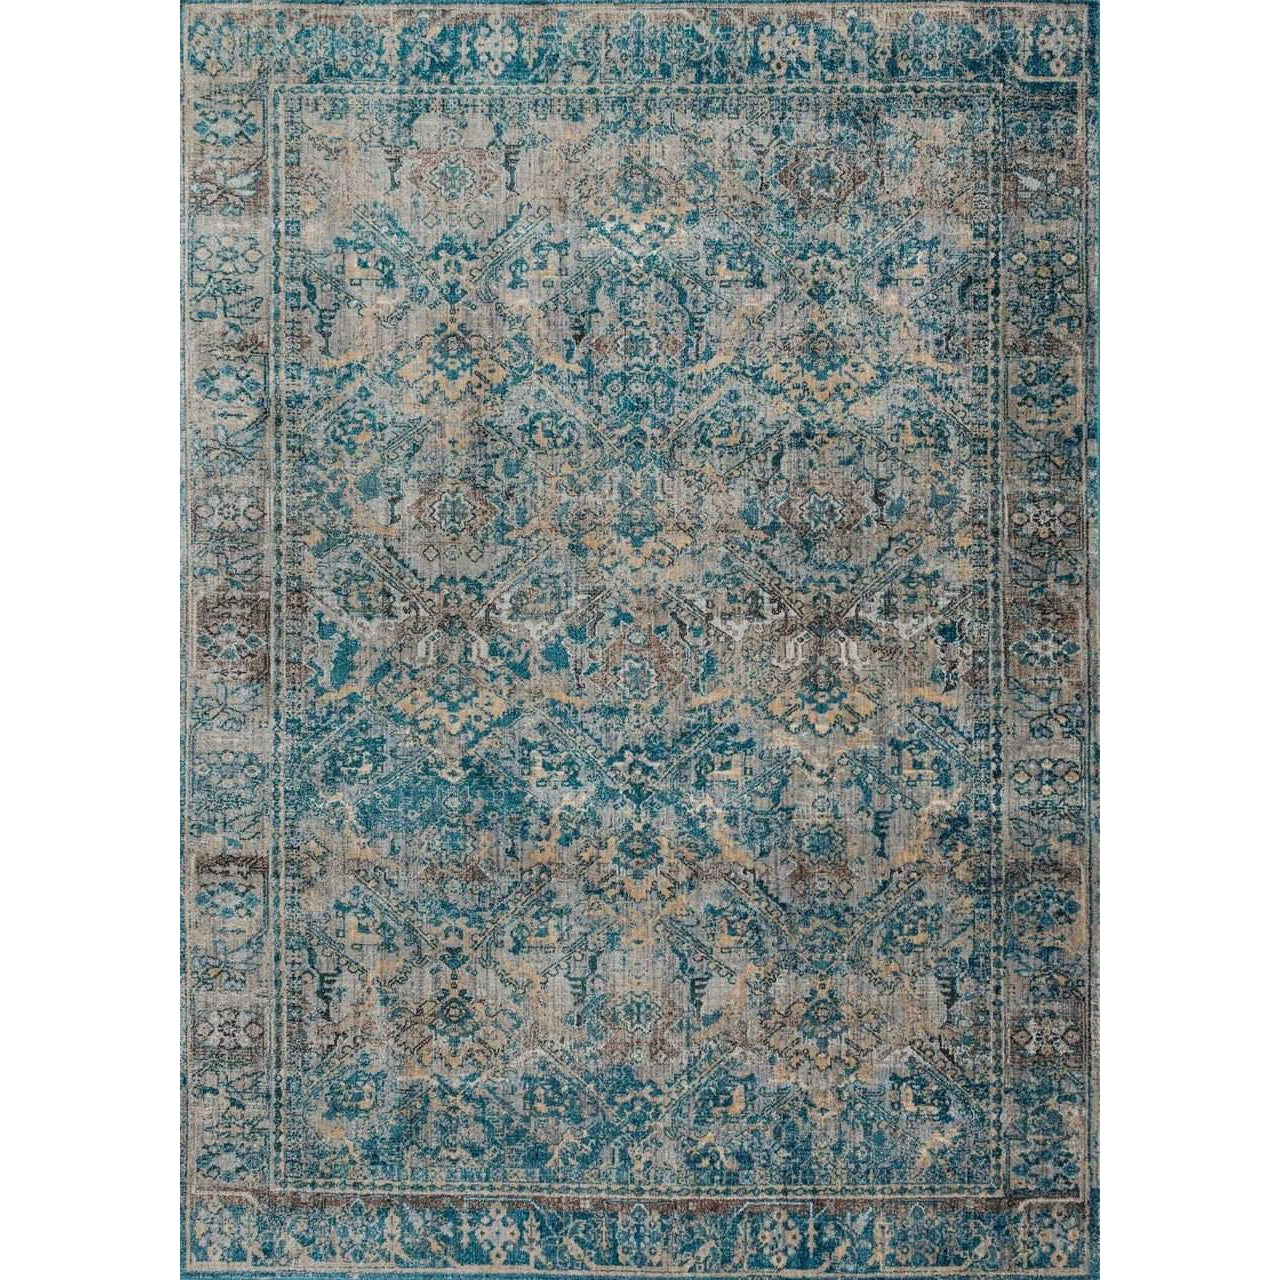 Joanna Gaines Rugs of Magnolia Home Rugs - Kivi Collection - Fog / Mediterranean - Blue Hand Home